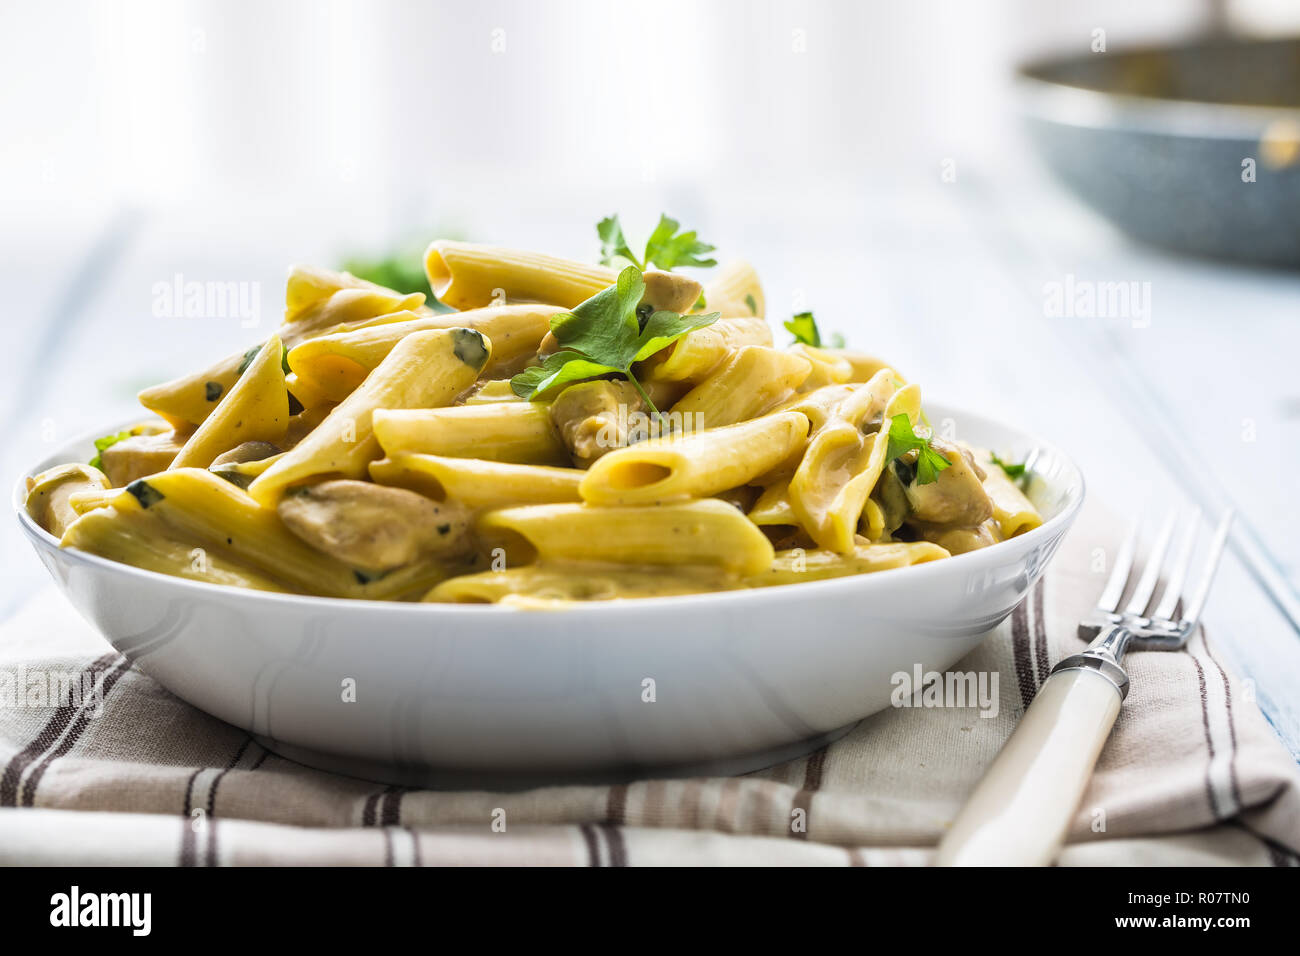 Pasta pene with chicken pieces mushrooms parmesan cheese sauce and herb decoration. Pene con pollo - Italian or medierranean cuisine. Stock Photo